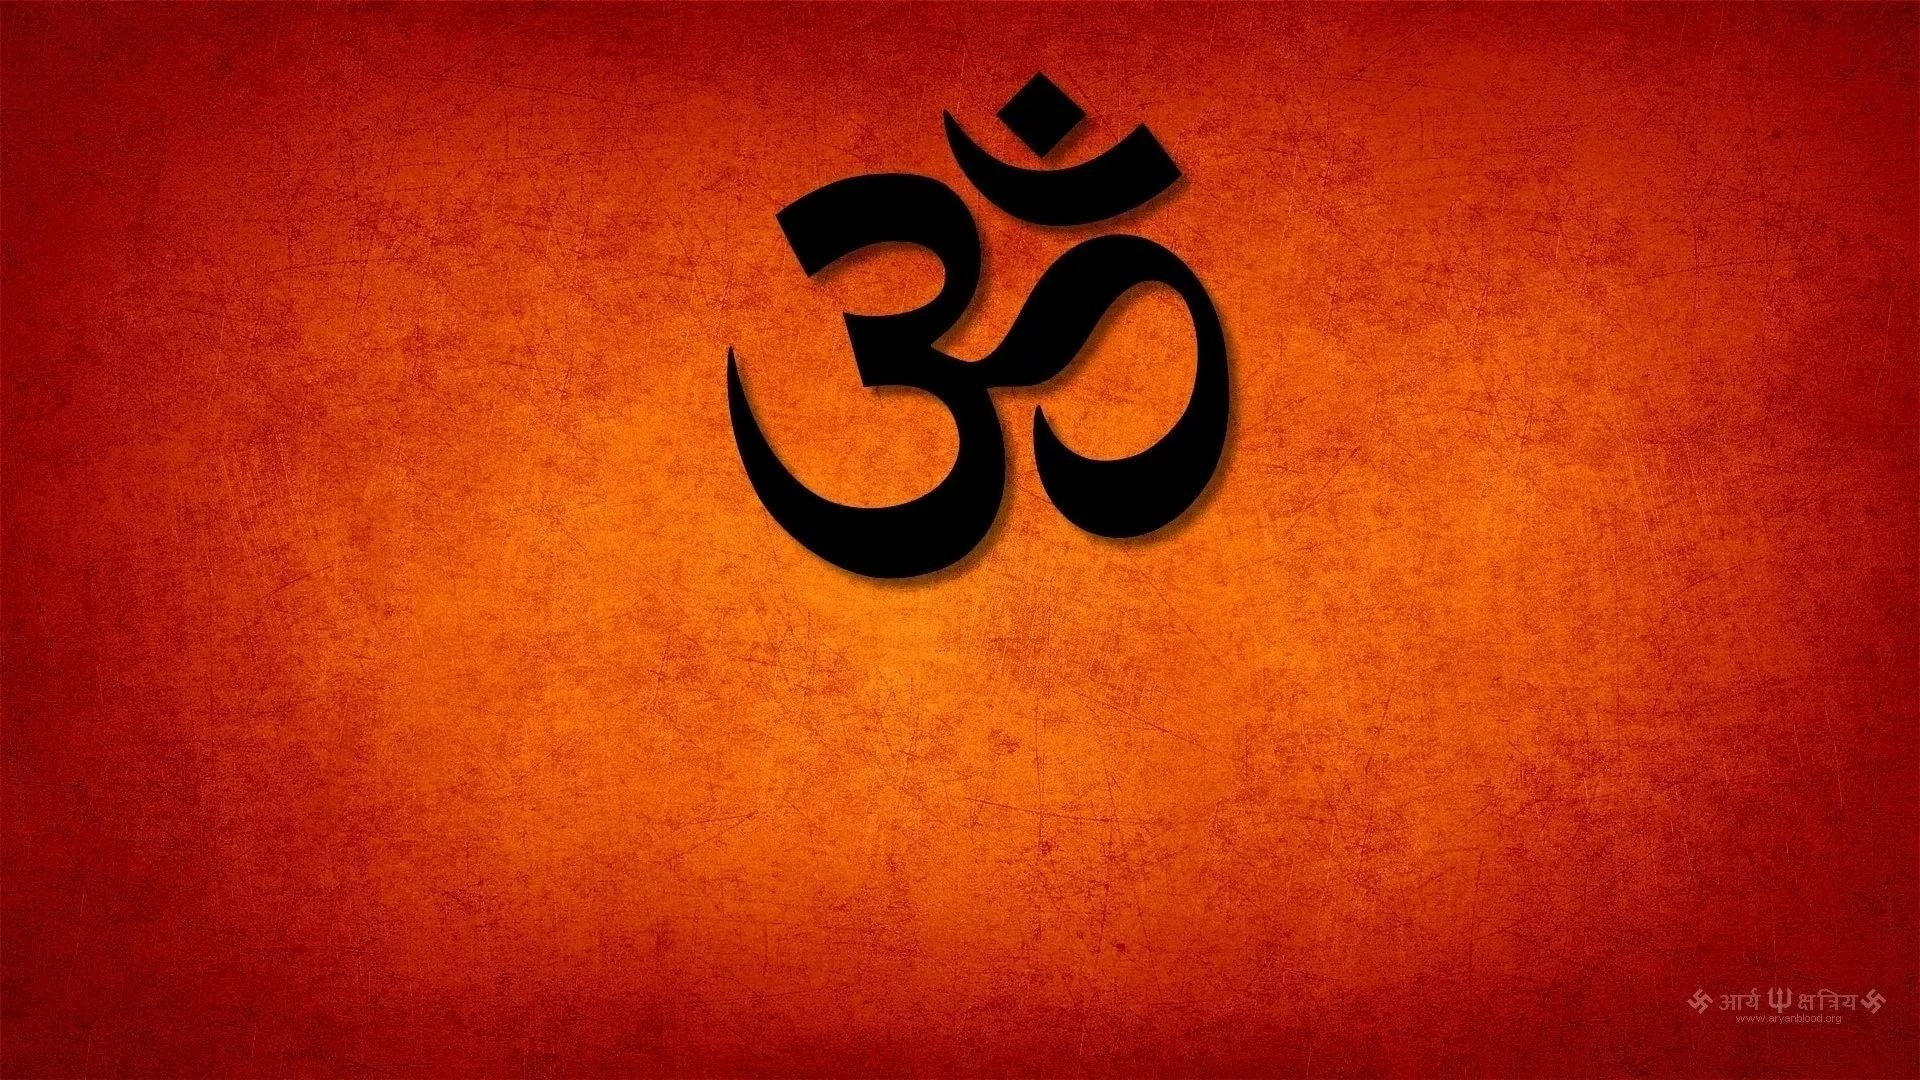 Om screen wallpaper